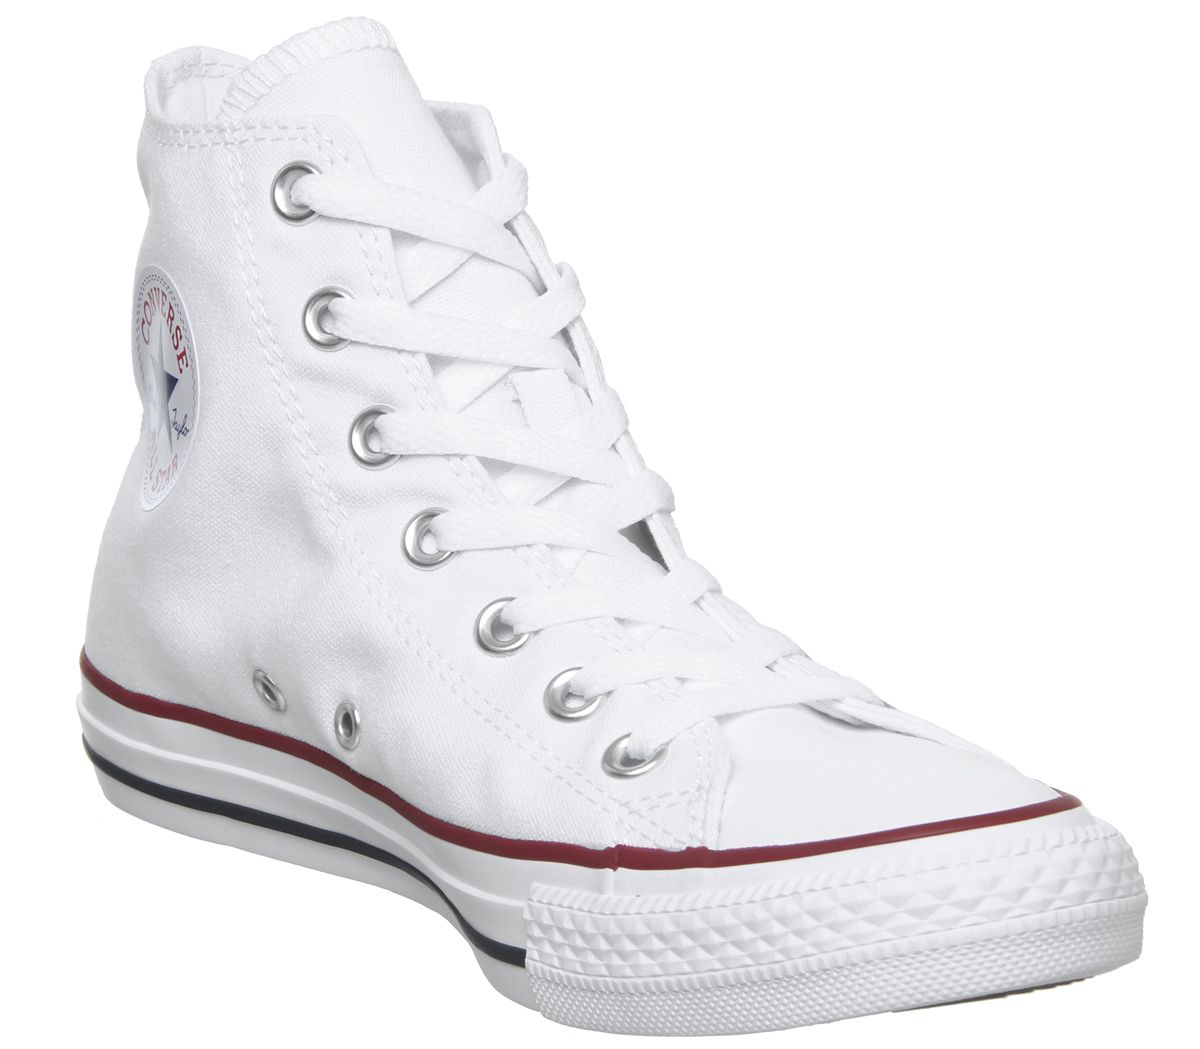 fac86ed806b Sentinel Mens Converse White Canvas Lace Up Trainers Size UK 7  Ex-Display